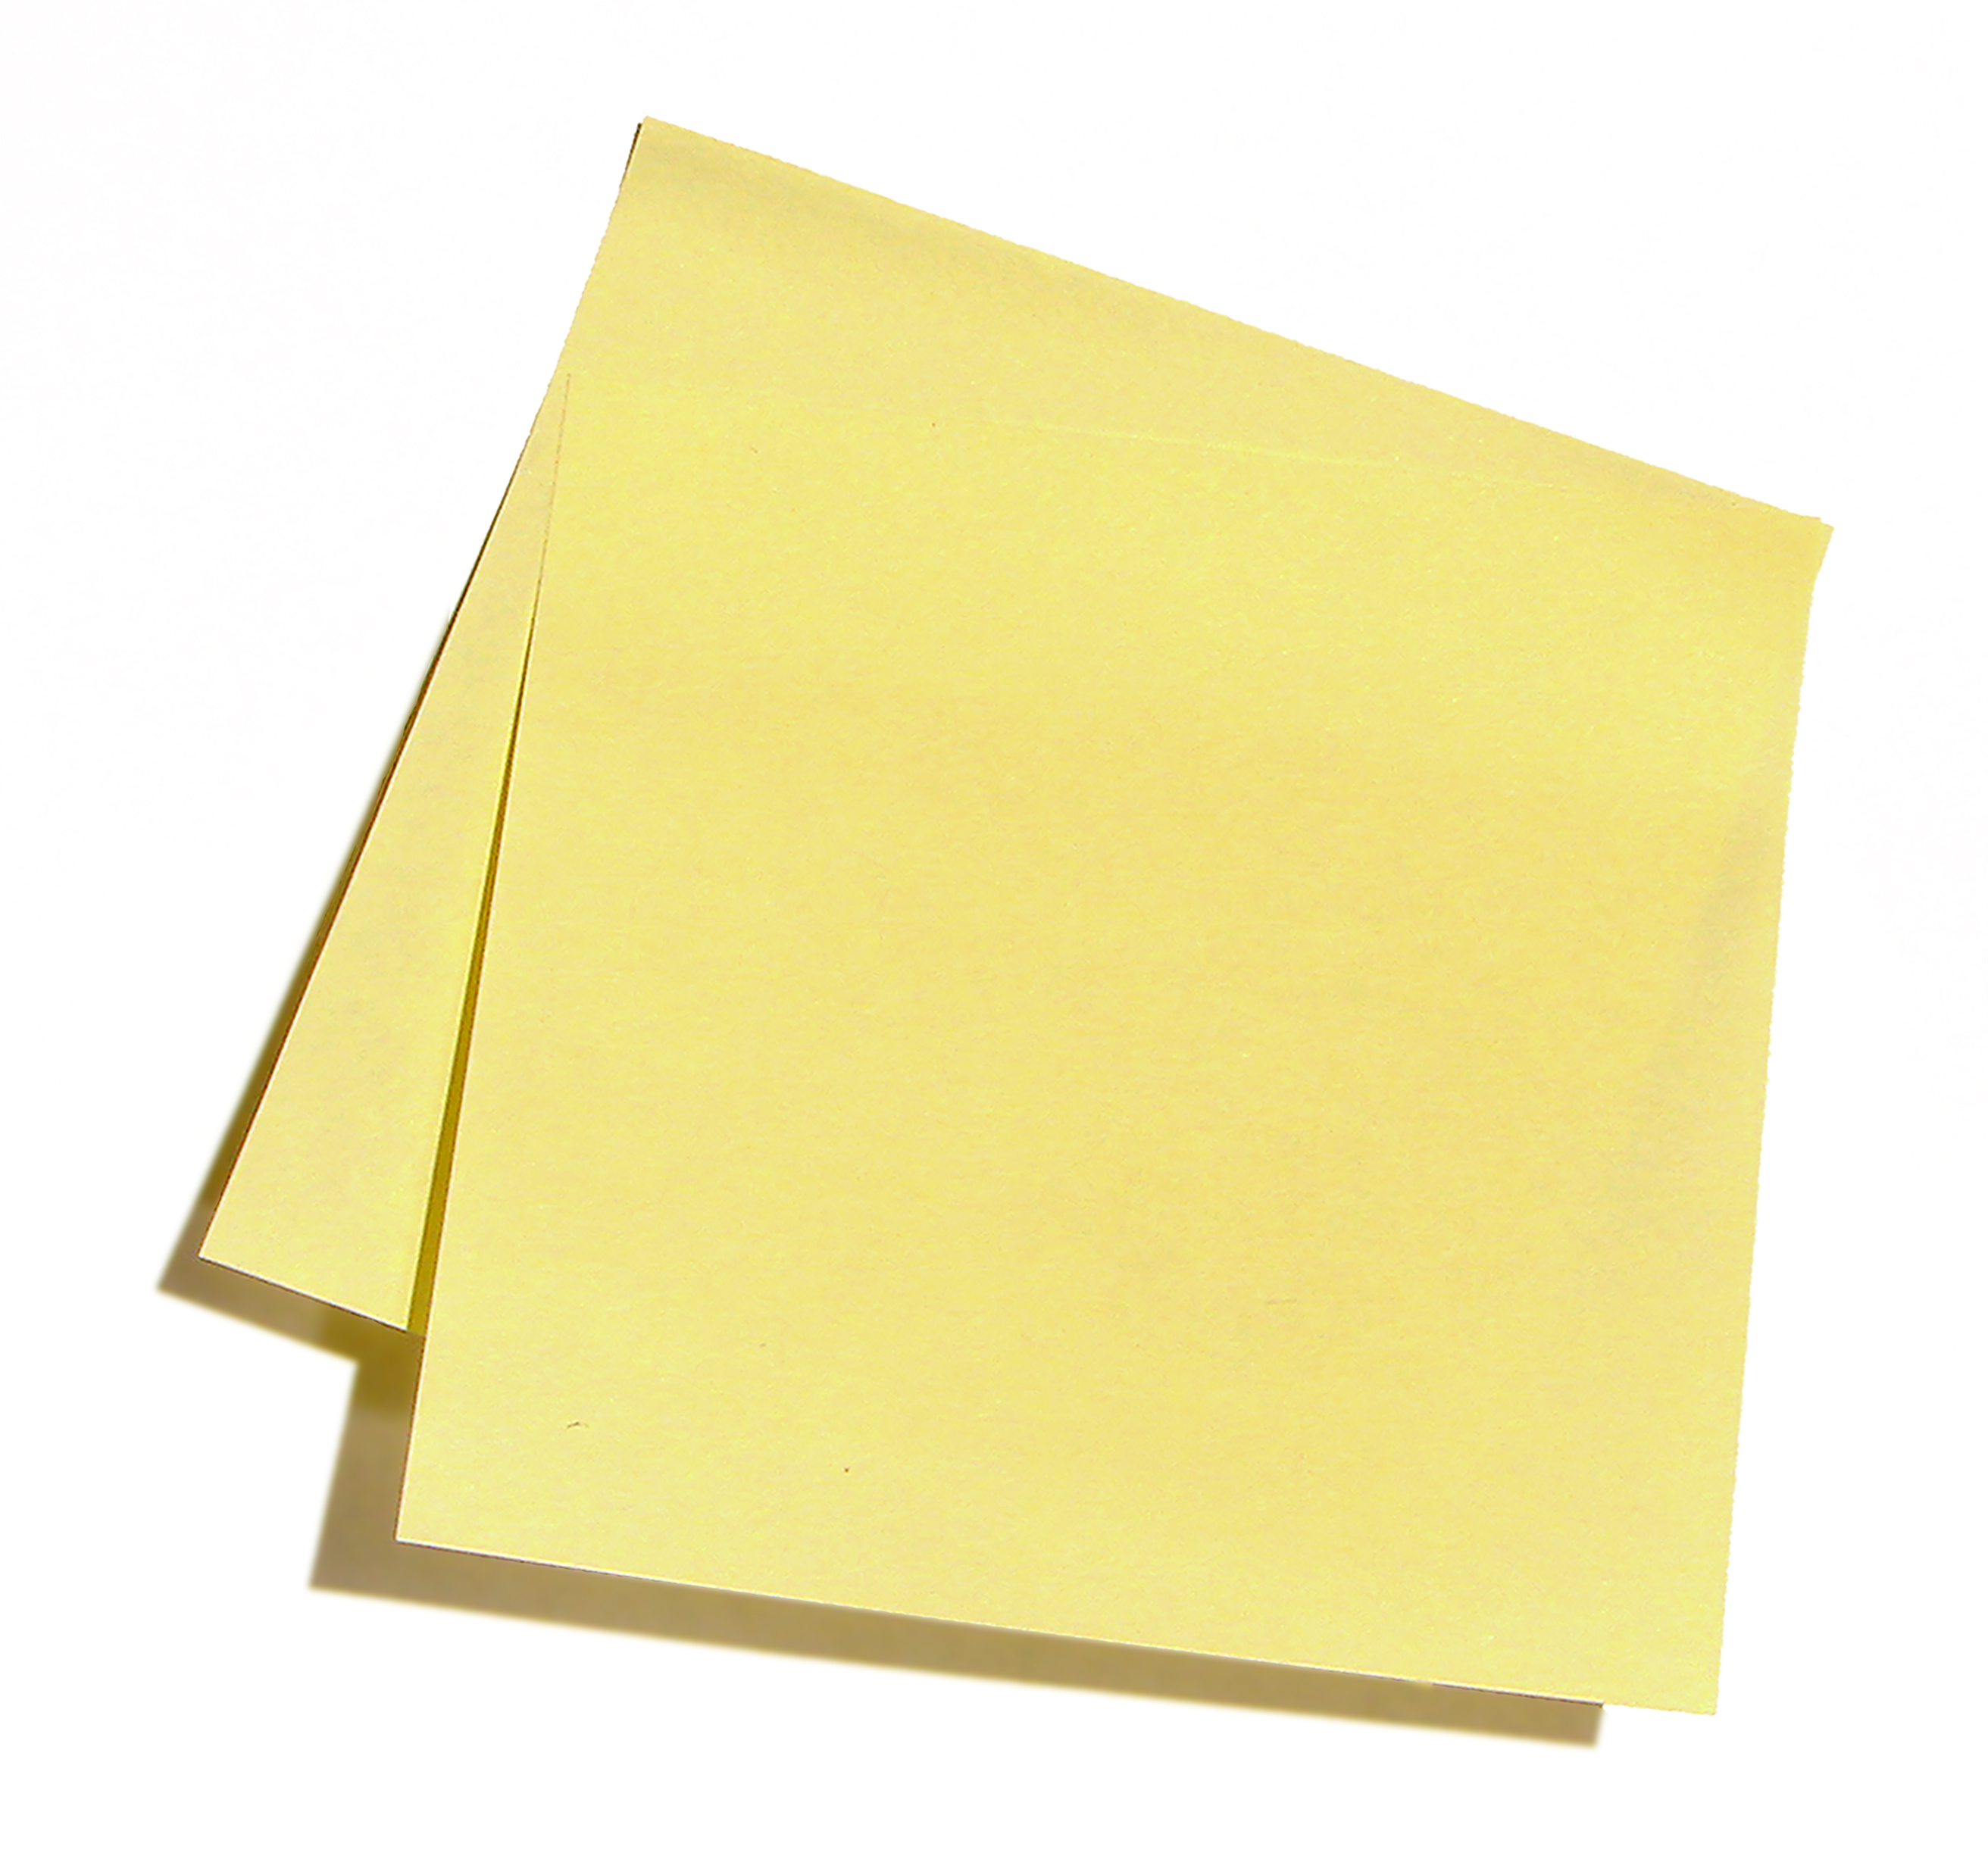 Paper clipart post it Post Clipart Double Post Others